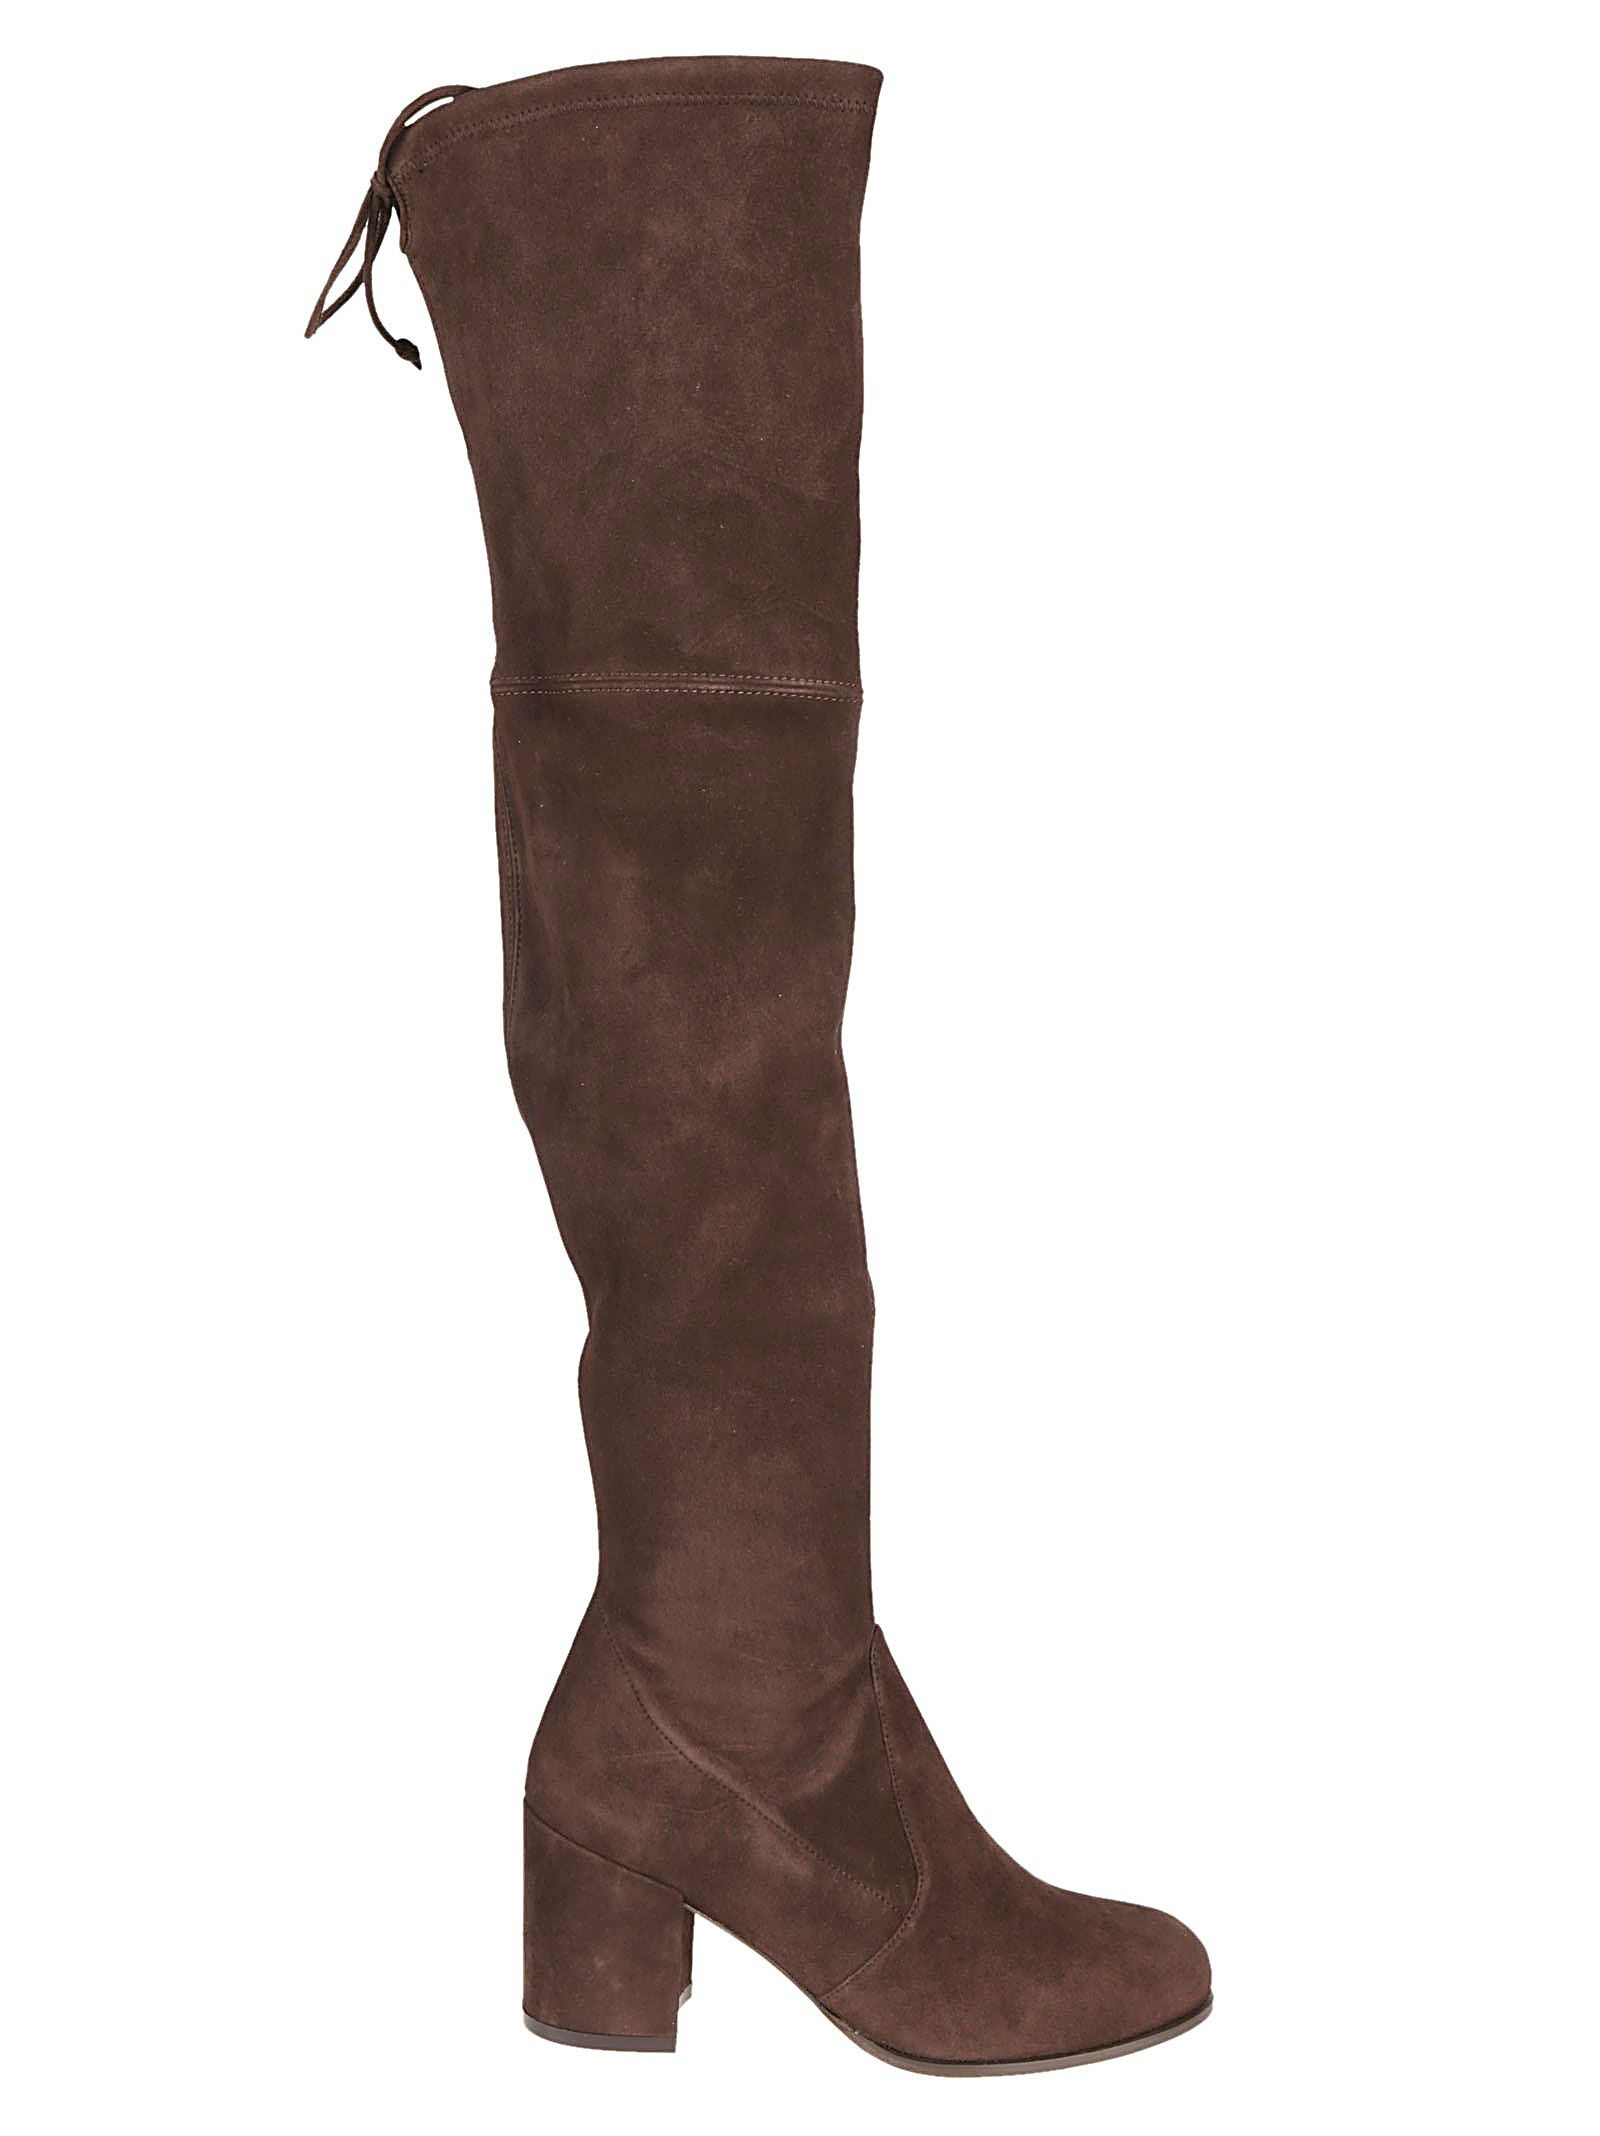 Tieland Over-The-Knee-Boots in Hickory